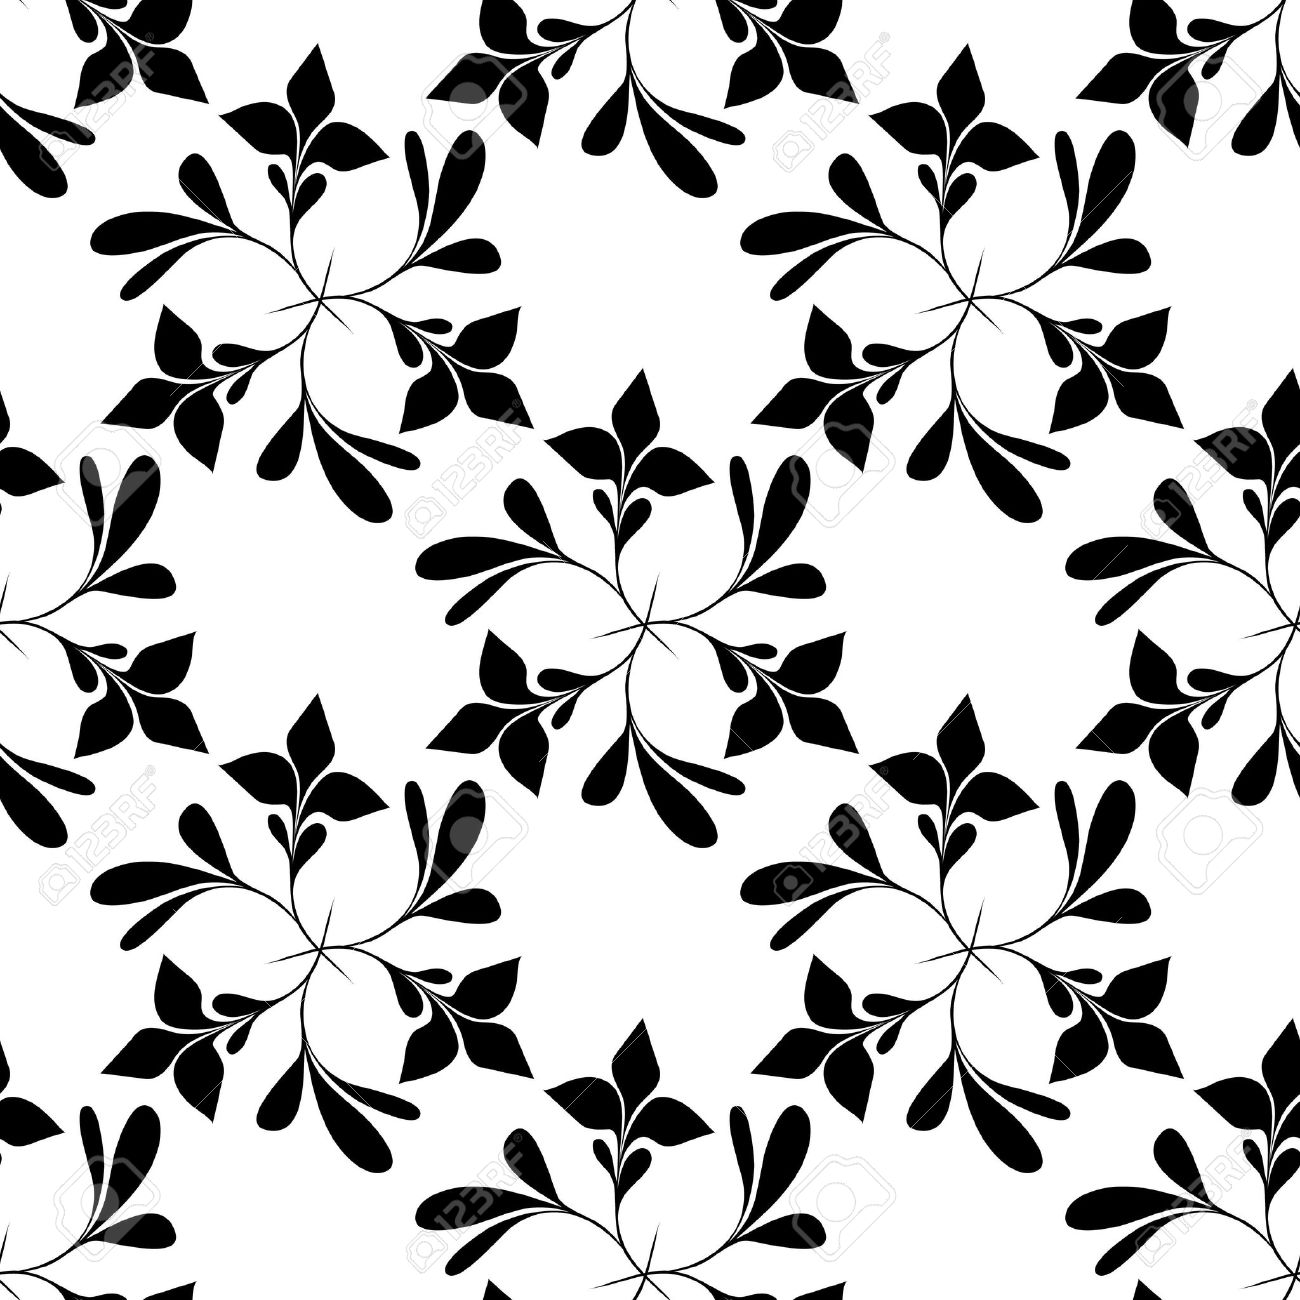 Seamless Black And White Floral Wallpaper Royalty Free Cliparts